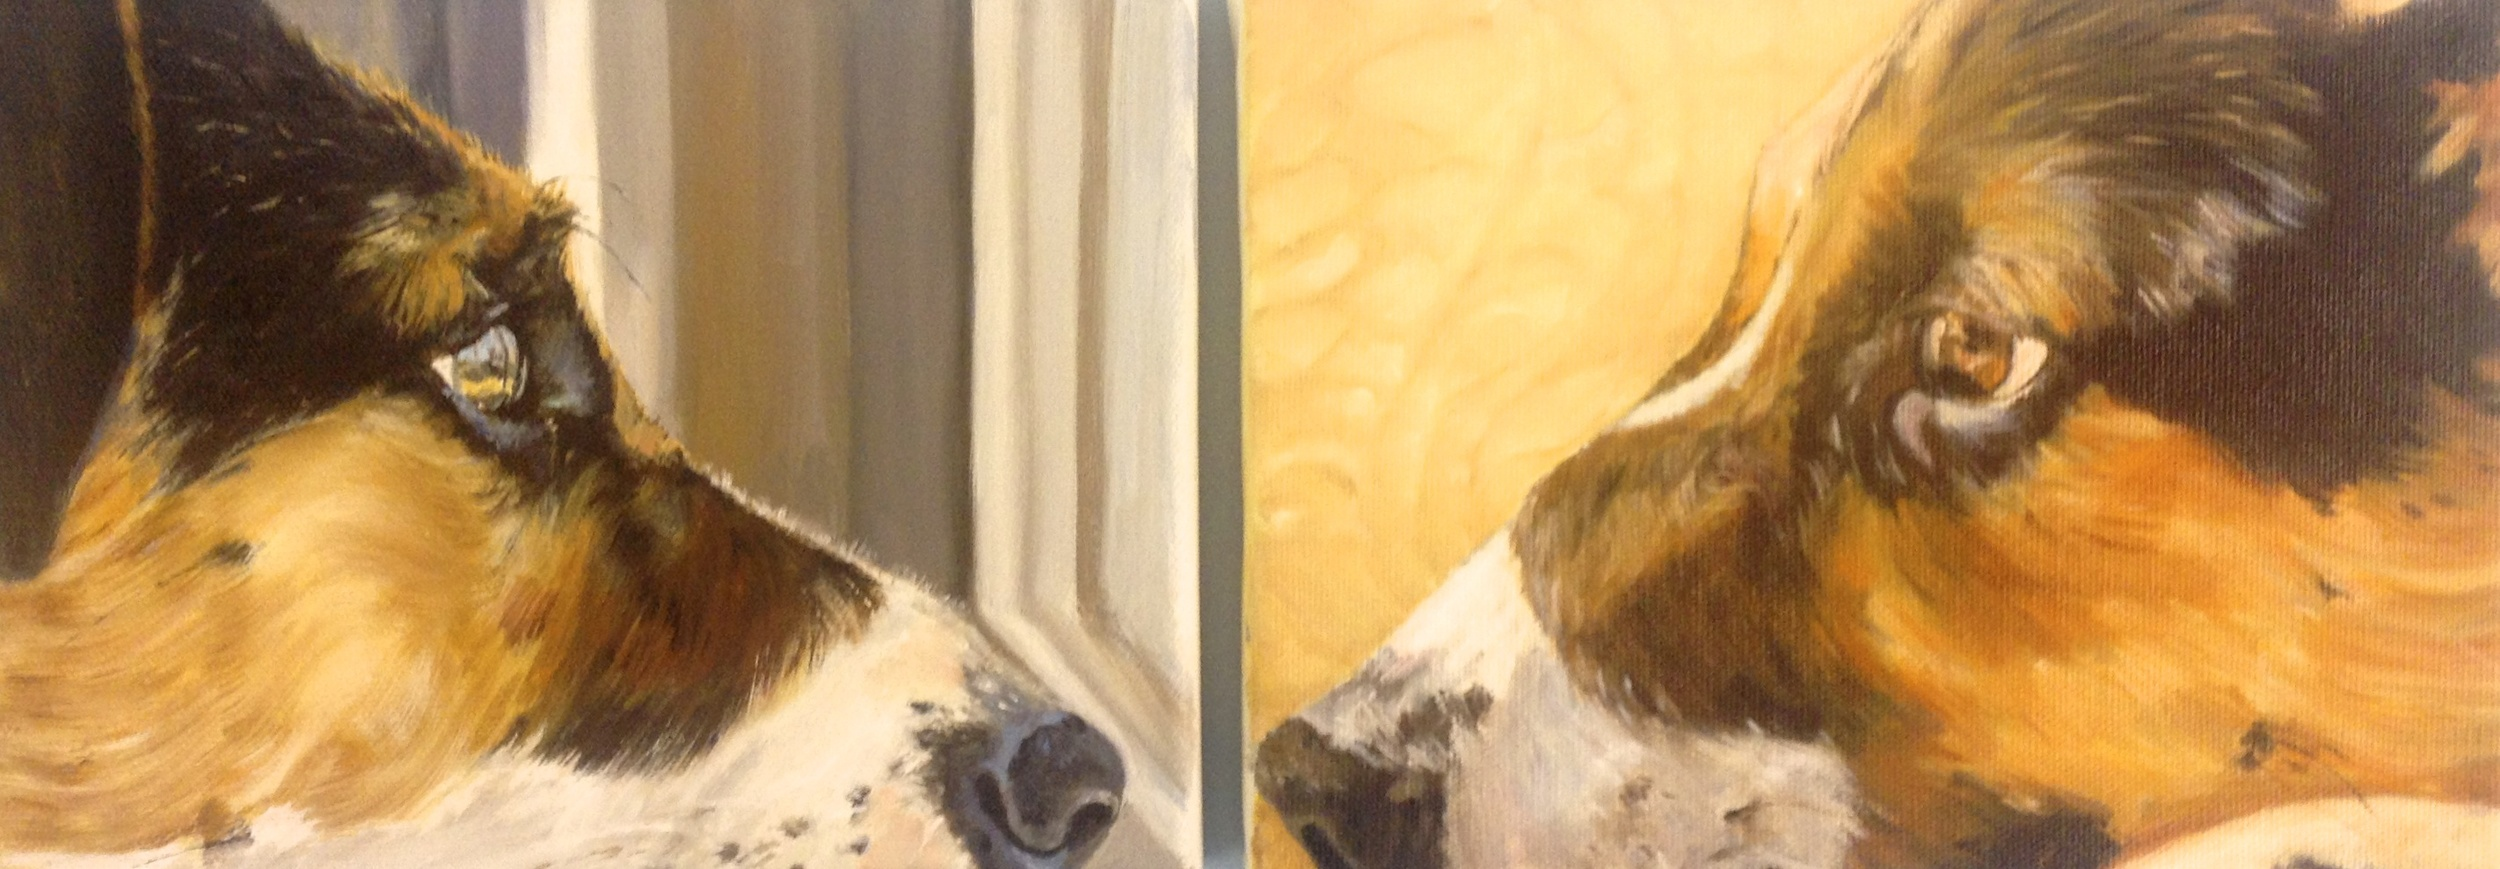 "A diptych of ""Maggie"" by Beverley Phillips, a student at Red Dot for 8 years."